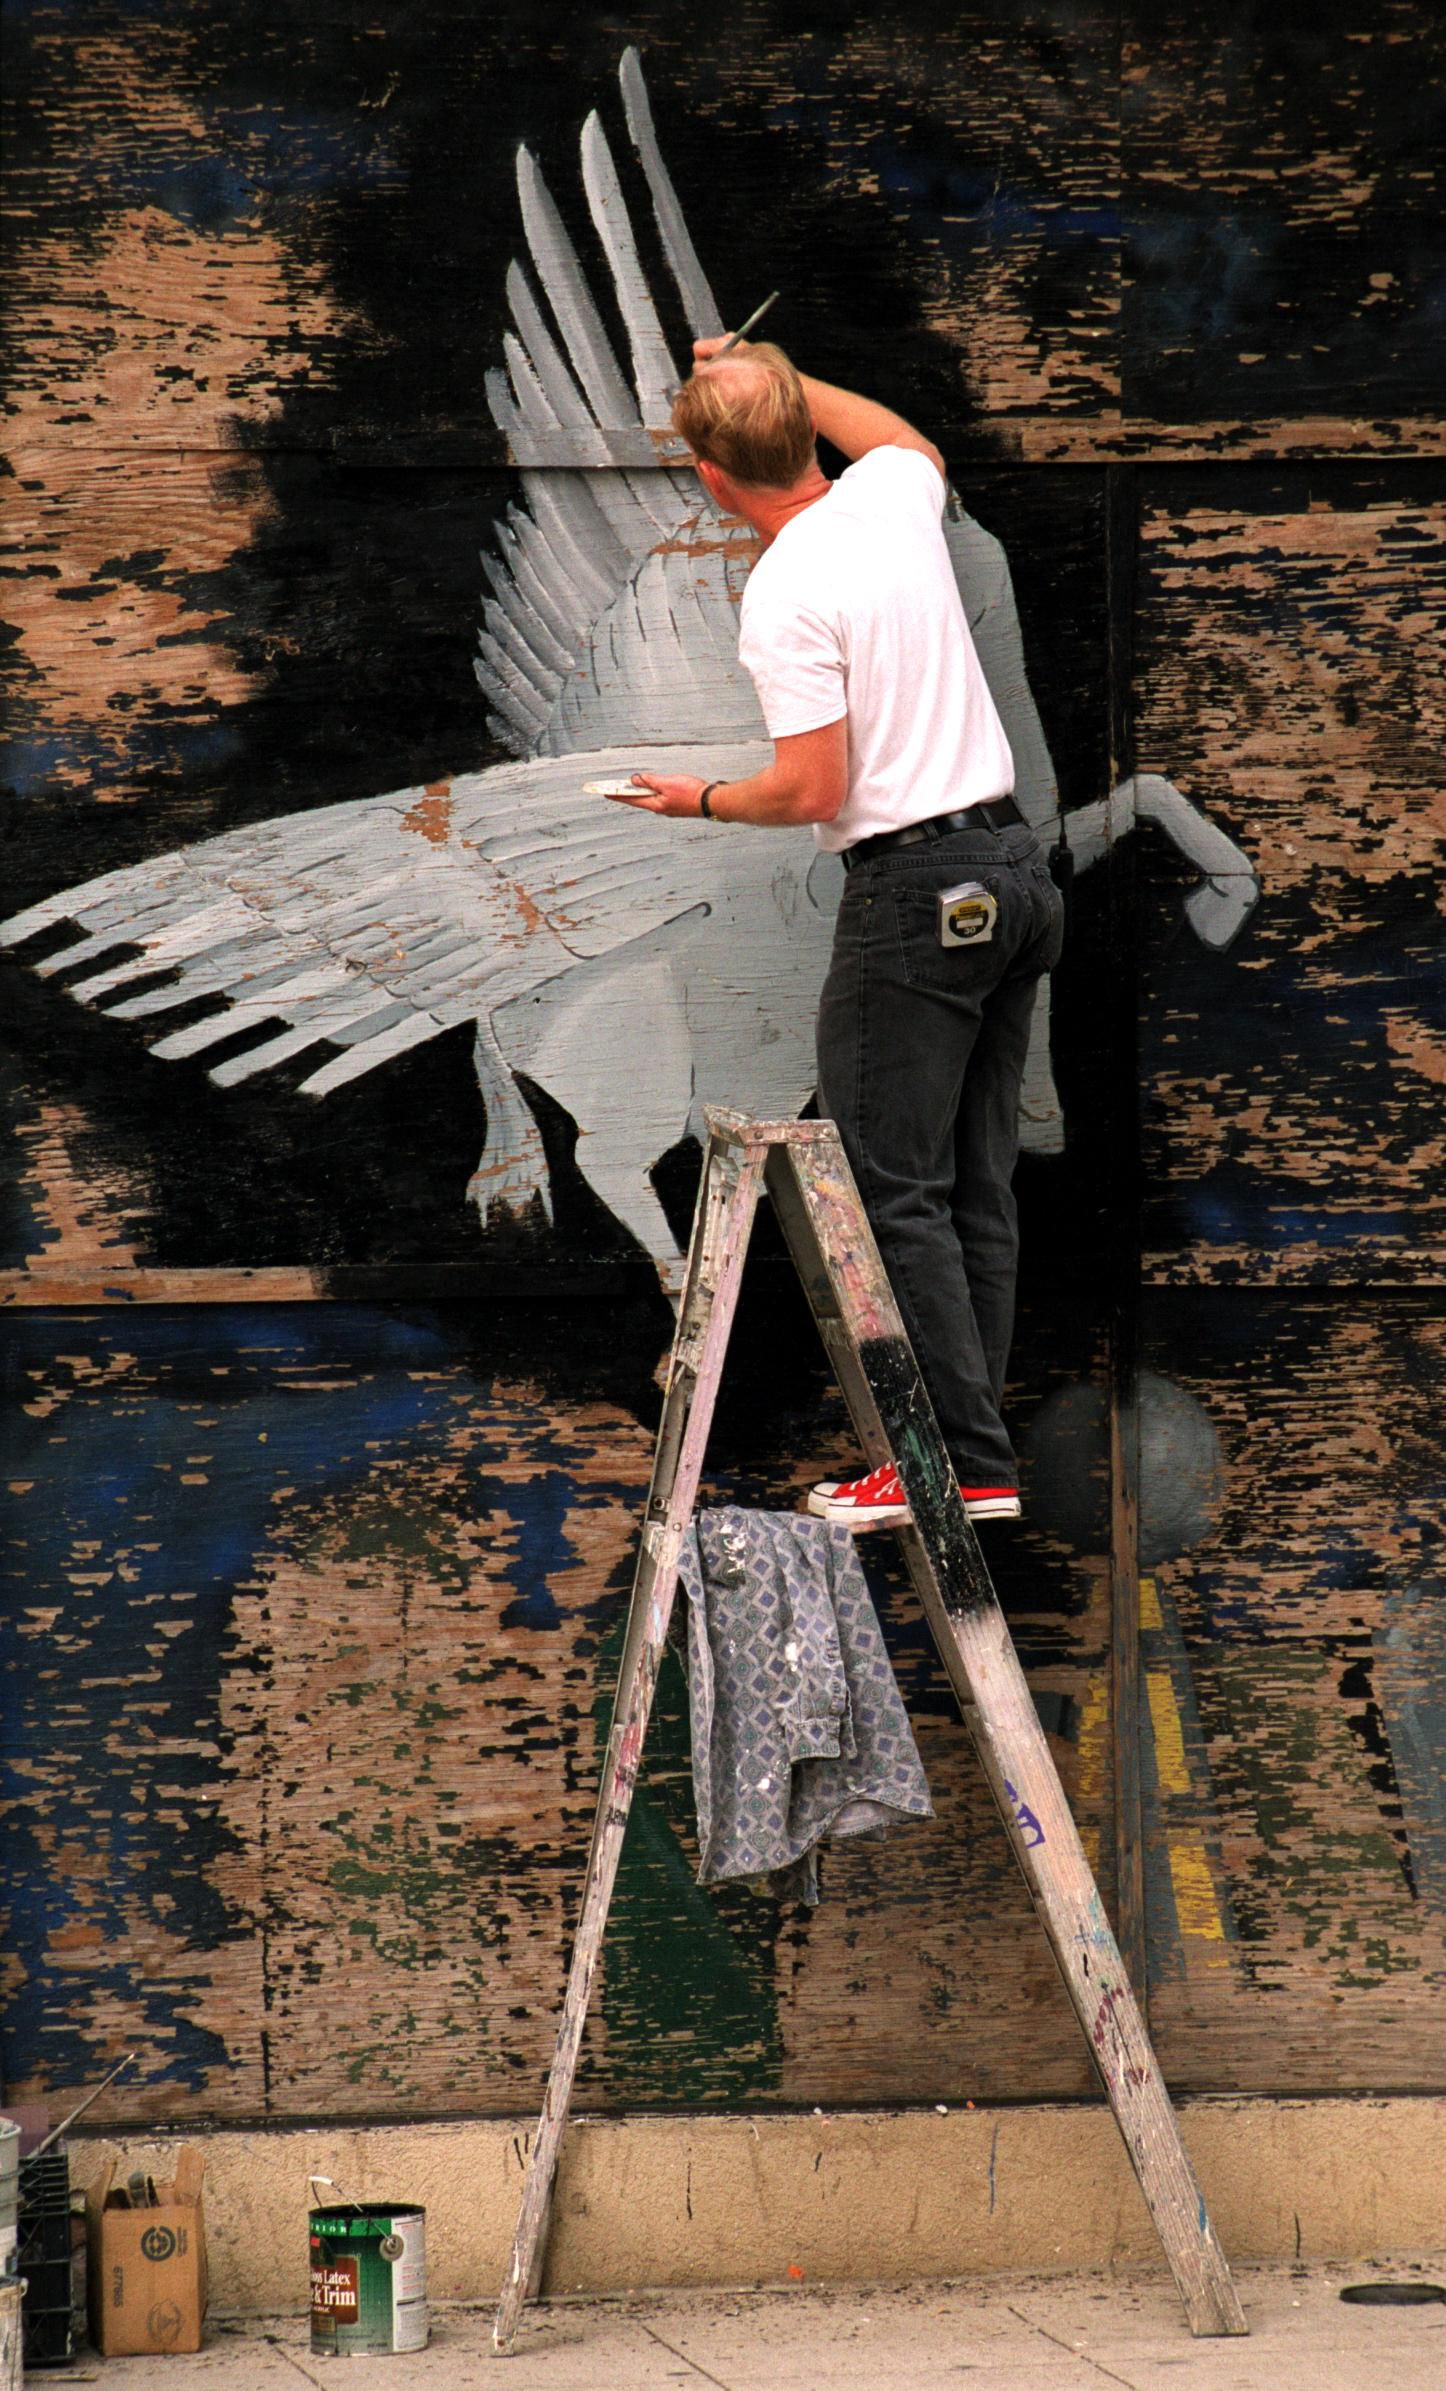 Thursday, Dec. 30, 1999: Frank Campagna, who works for Entertainment Collaborative, cleans up a Pegasus mural at the corner of Main and Akard in downtown Dallas.  Preparations were in the final stages for the millennium celebration.